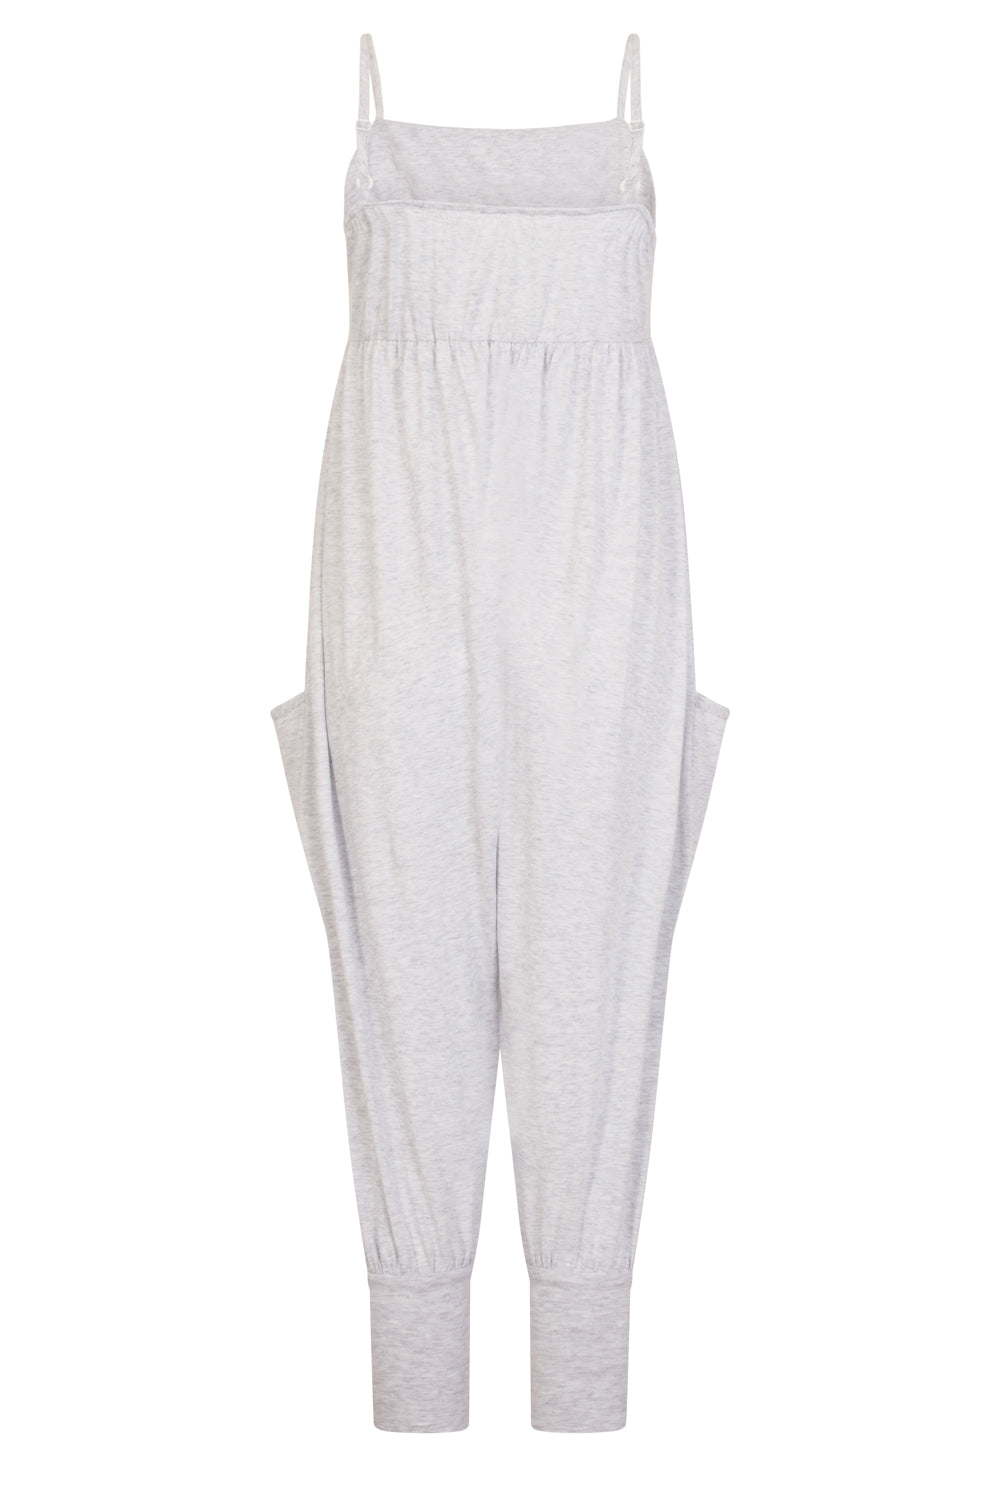 Feel Good Girls Jumpsuit